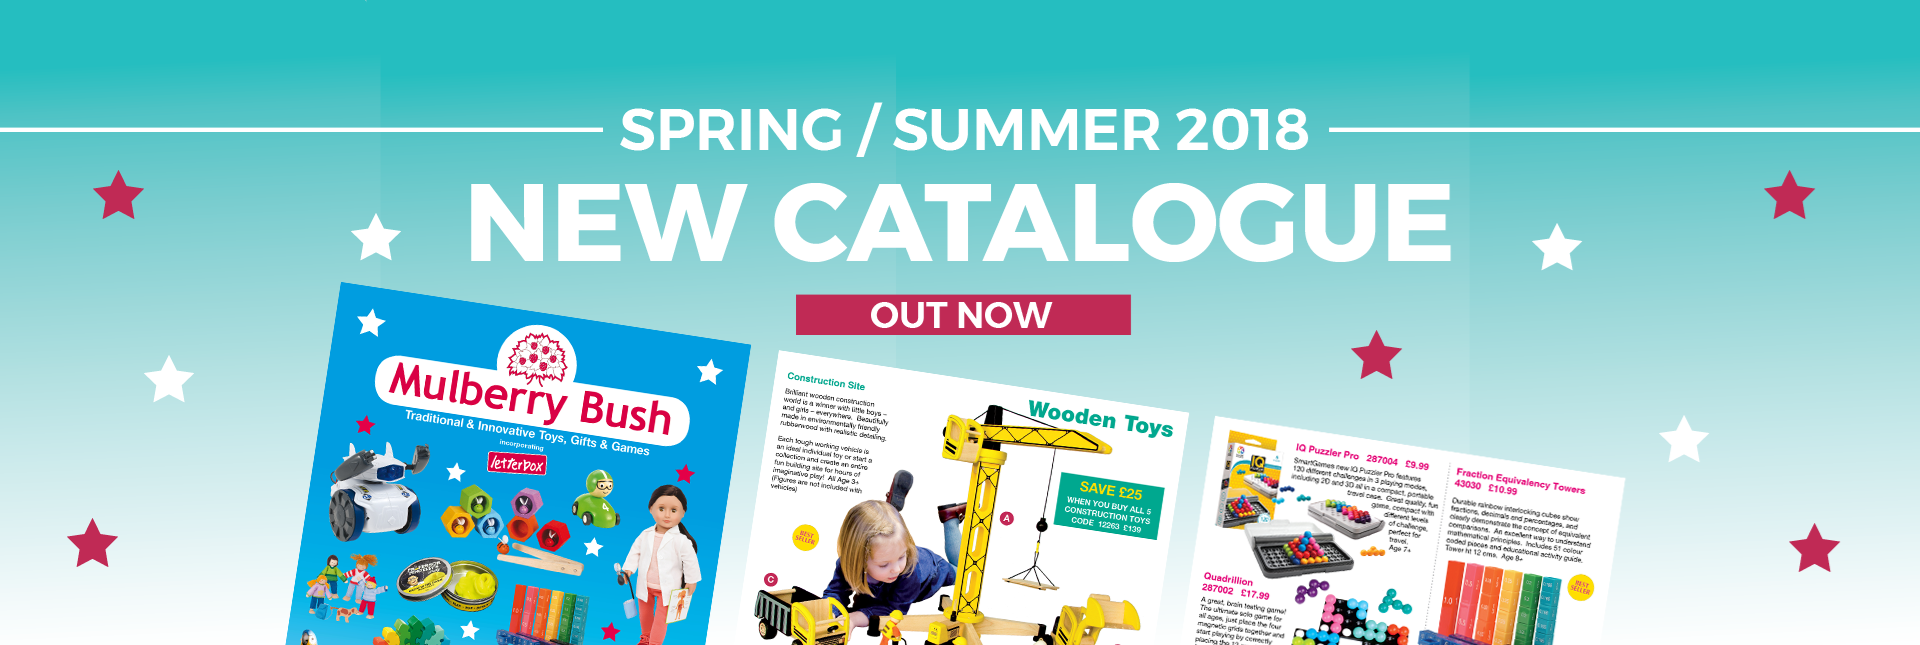 Spring / Summer Catalogue - Out Now